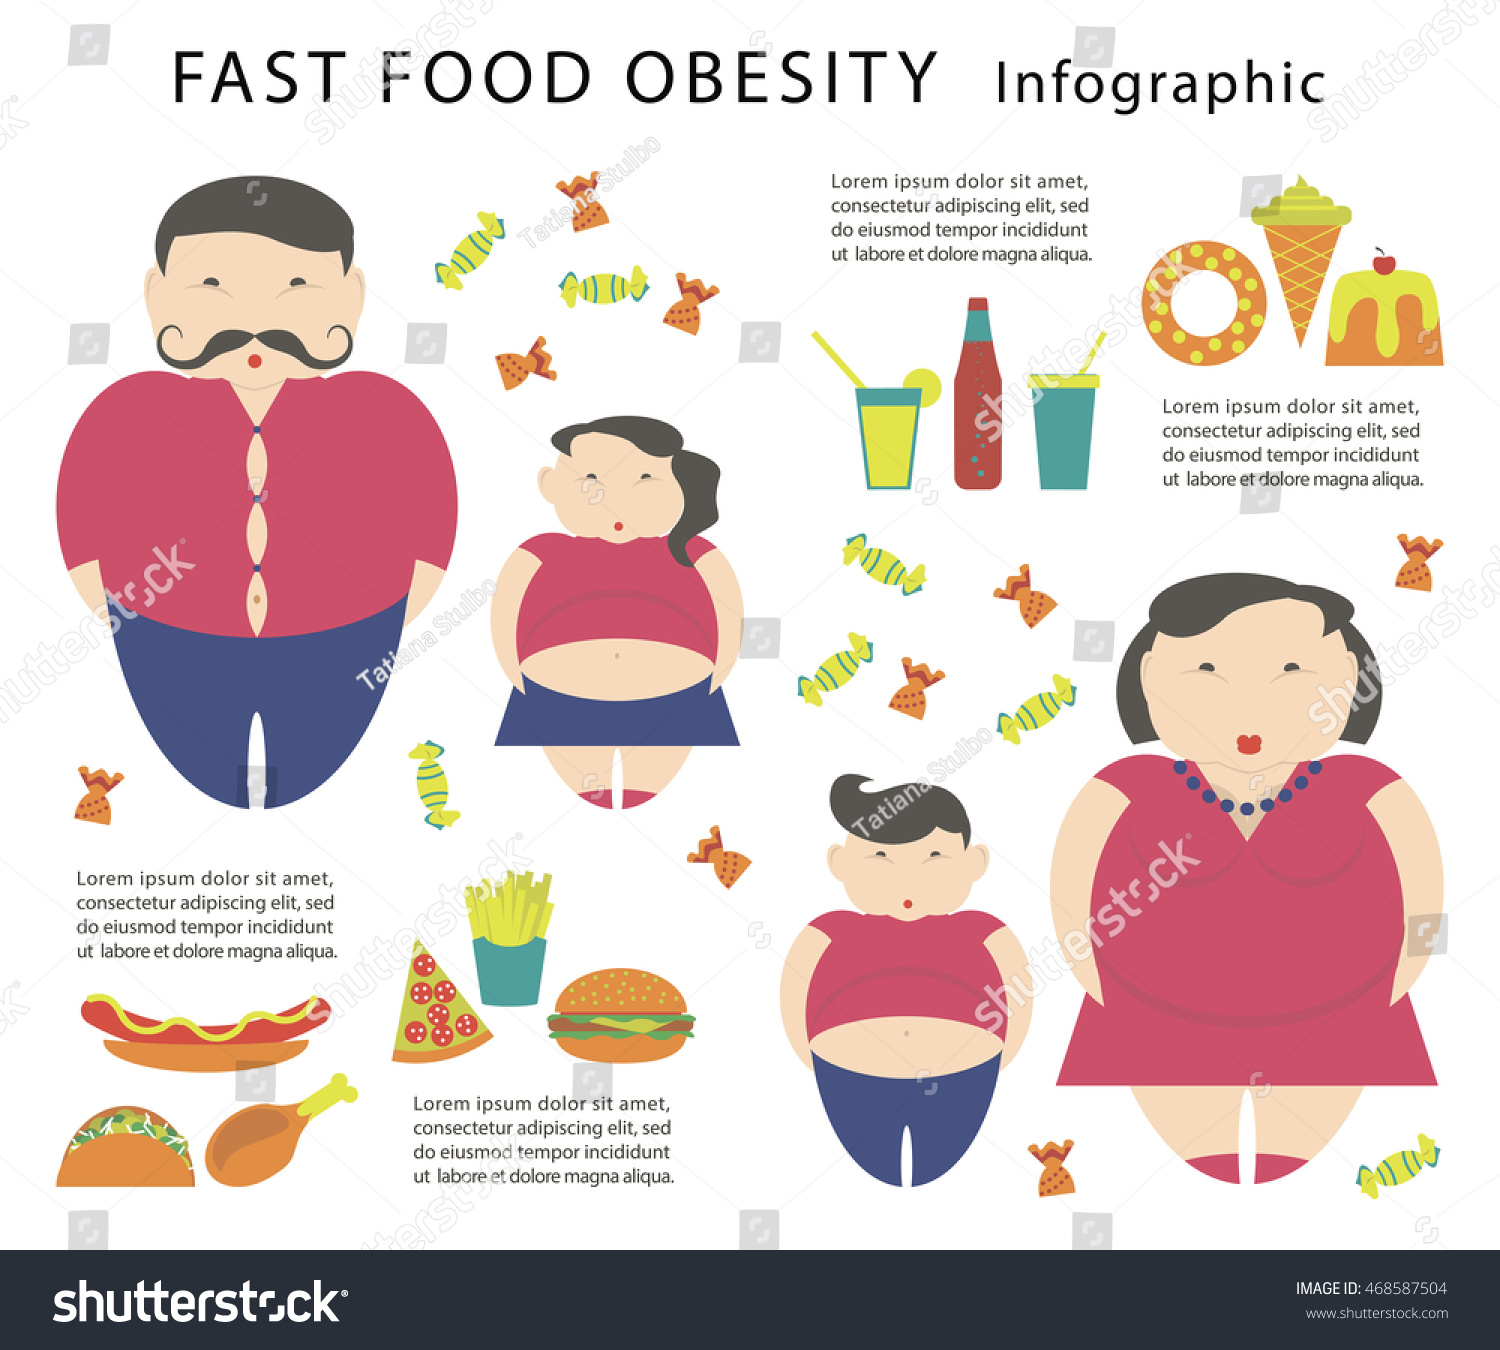 Obesity Infographic Template Junk Fast Food Stock Vector